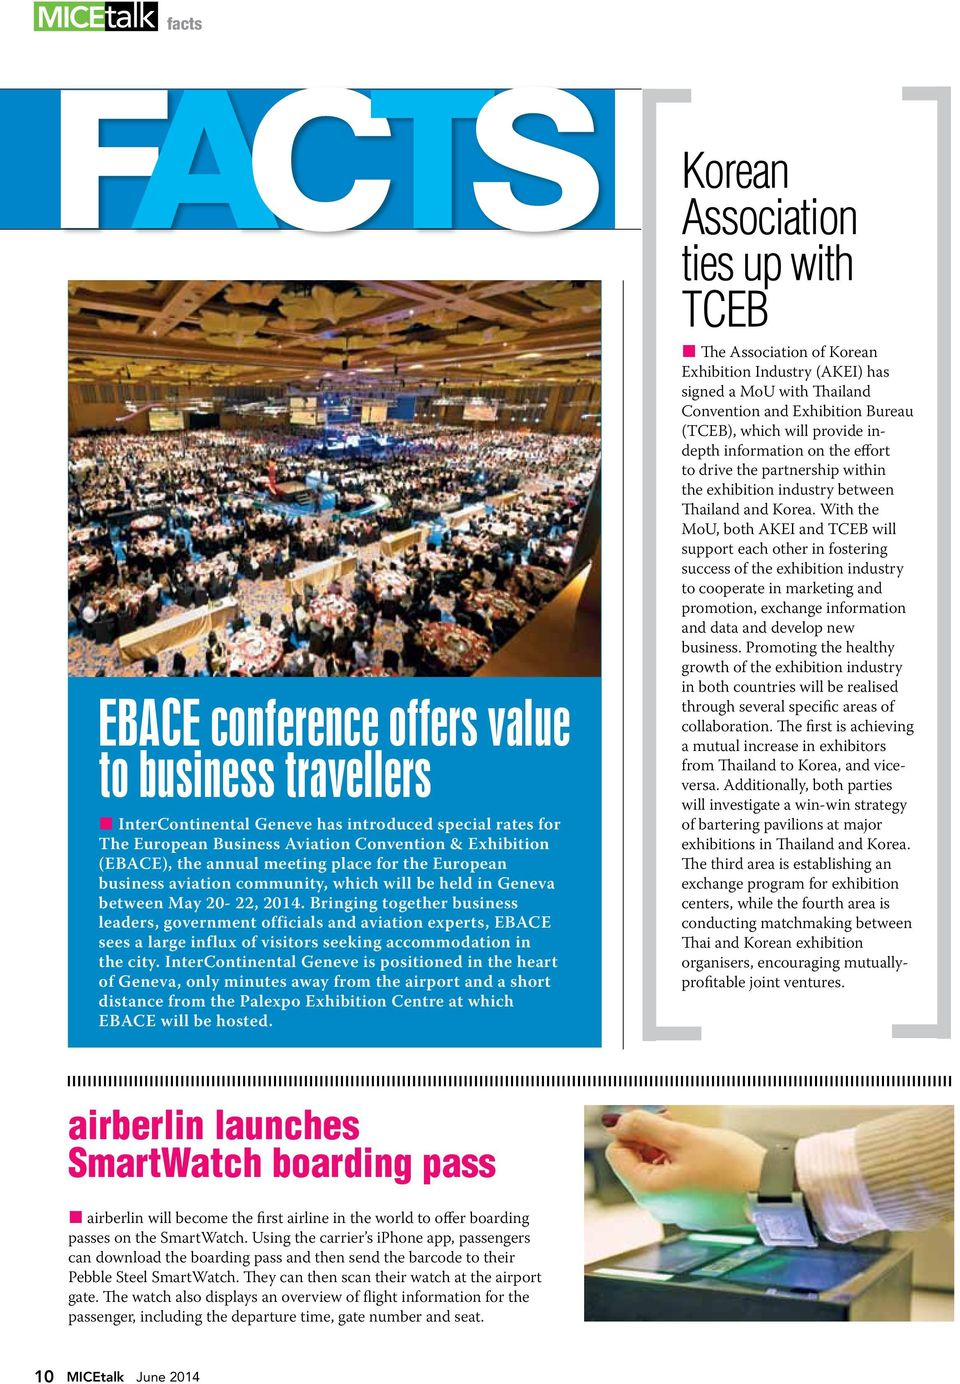 Bringing together business leaders, government officials and aviation experts, EBACE sees a large influx of visitors seeking accommodation in the city.